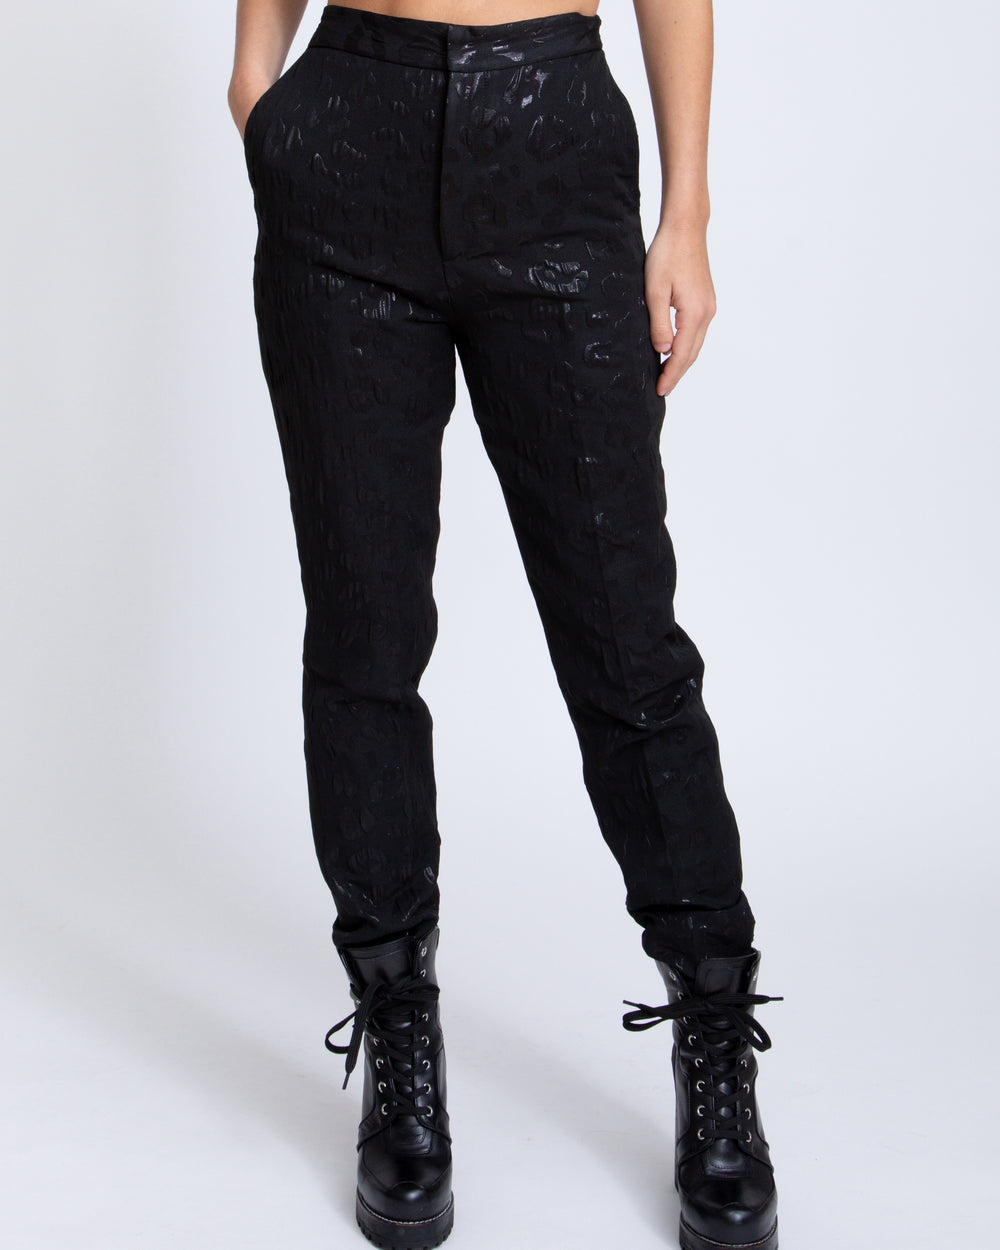 Leopard Trouser - Black